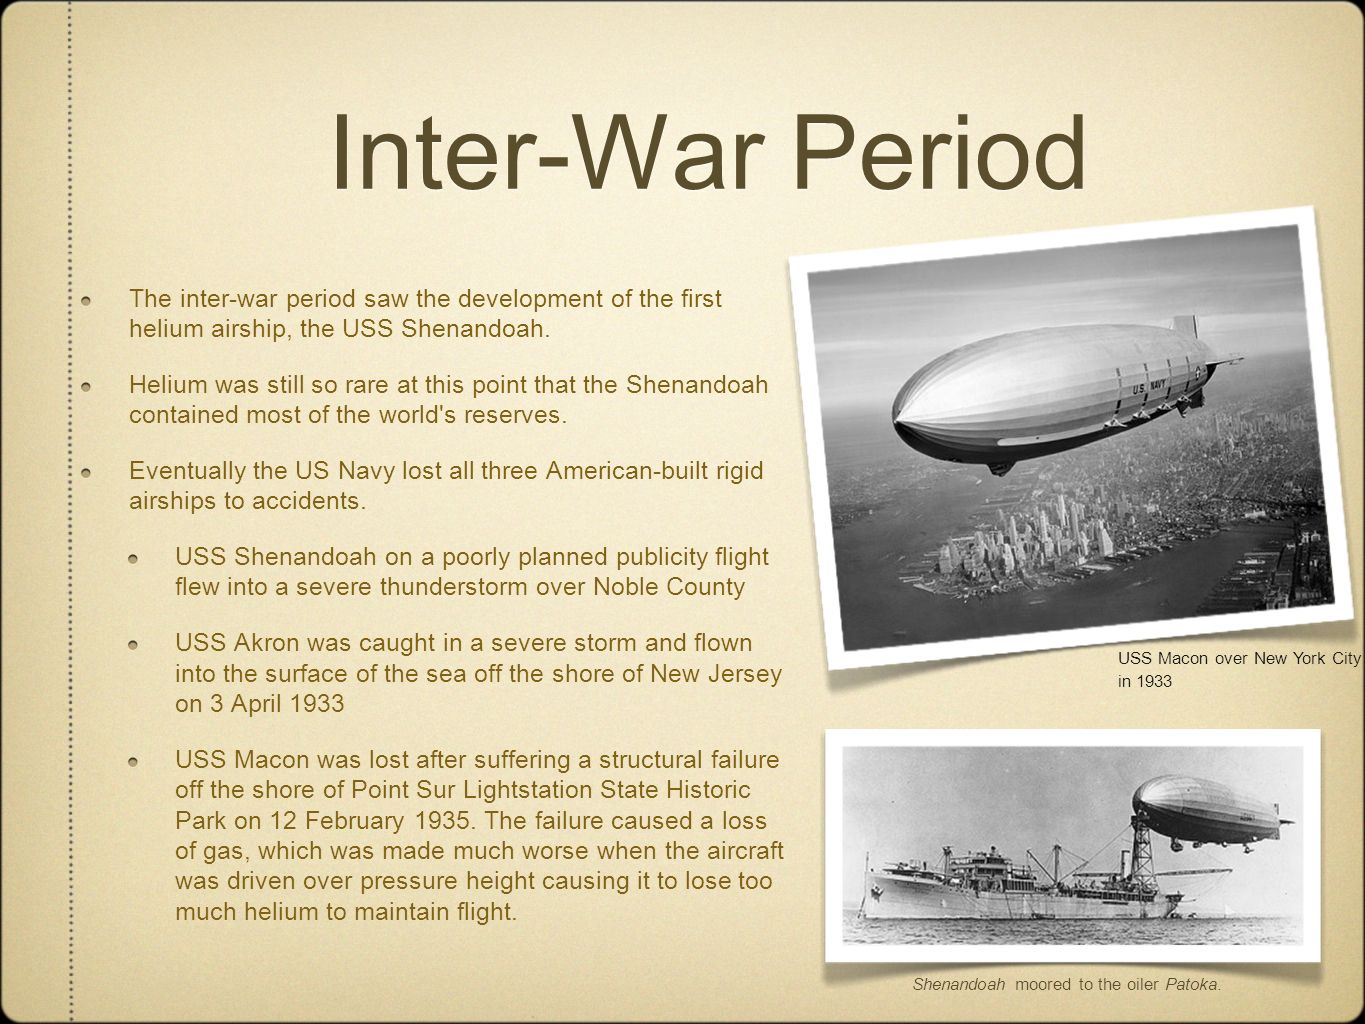 Inter-War PeriodThe inter-war period saw the development of the first helium airship, the USS Shenandoah.